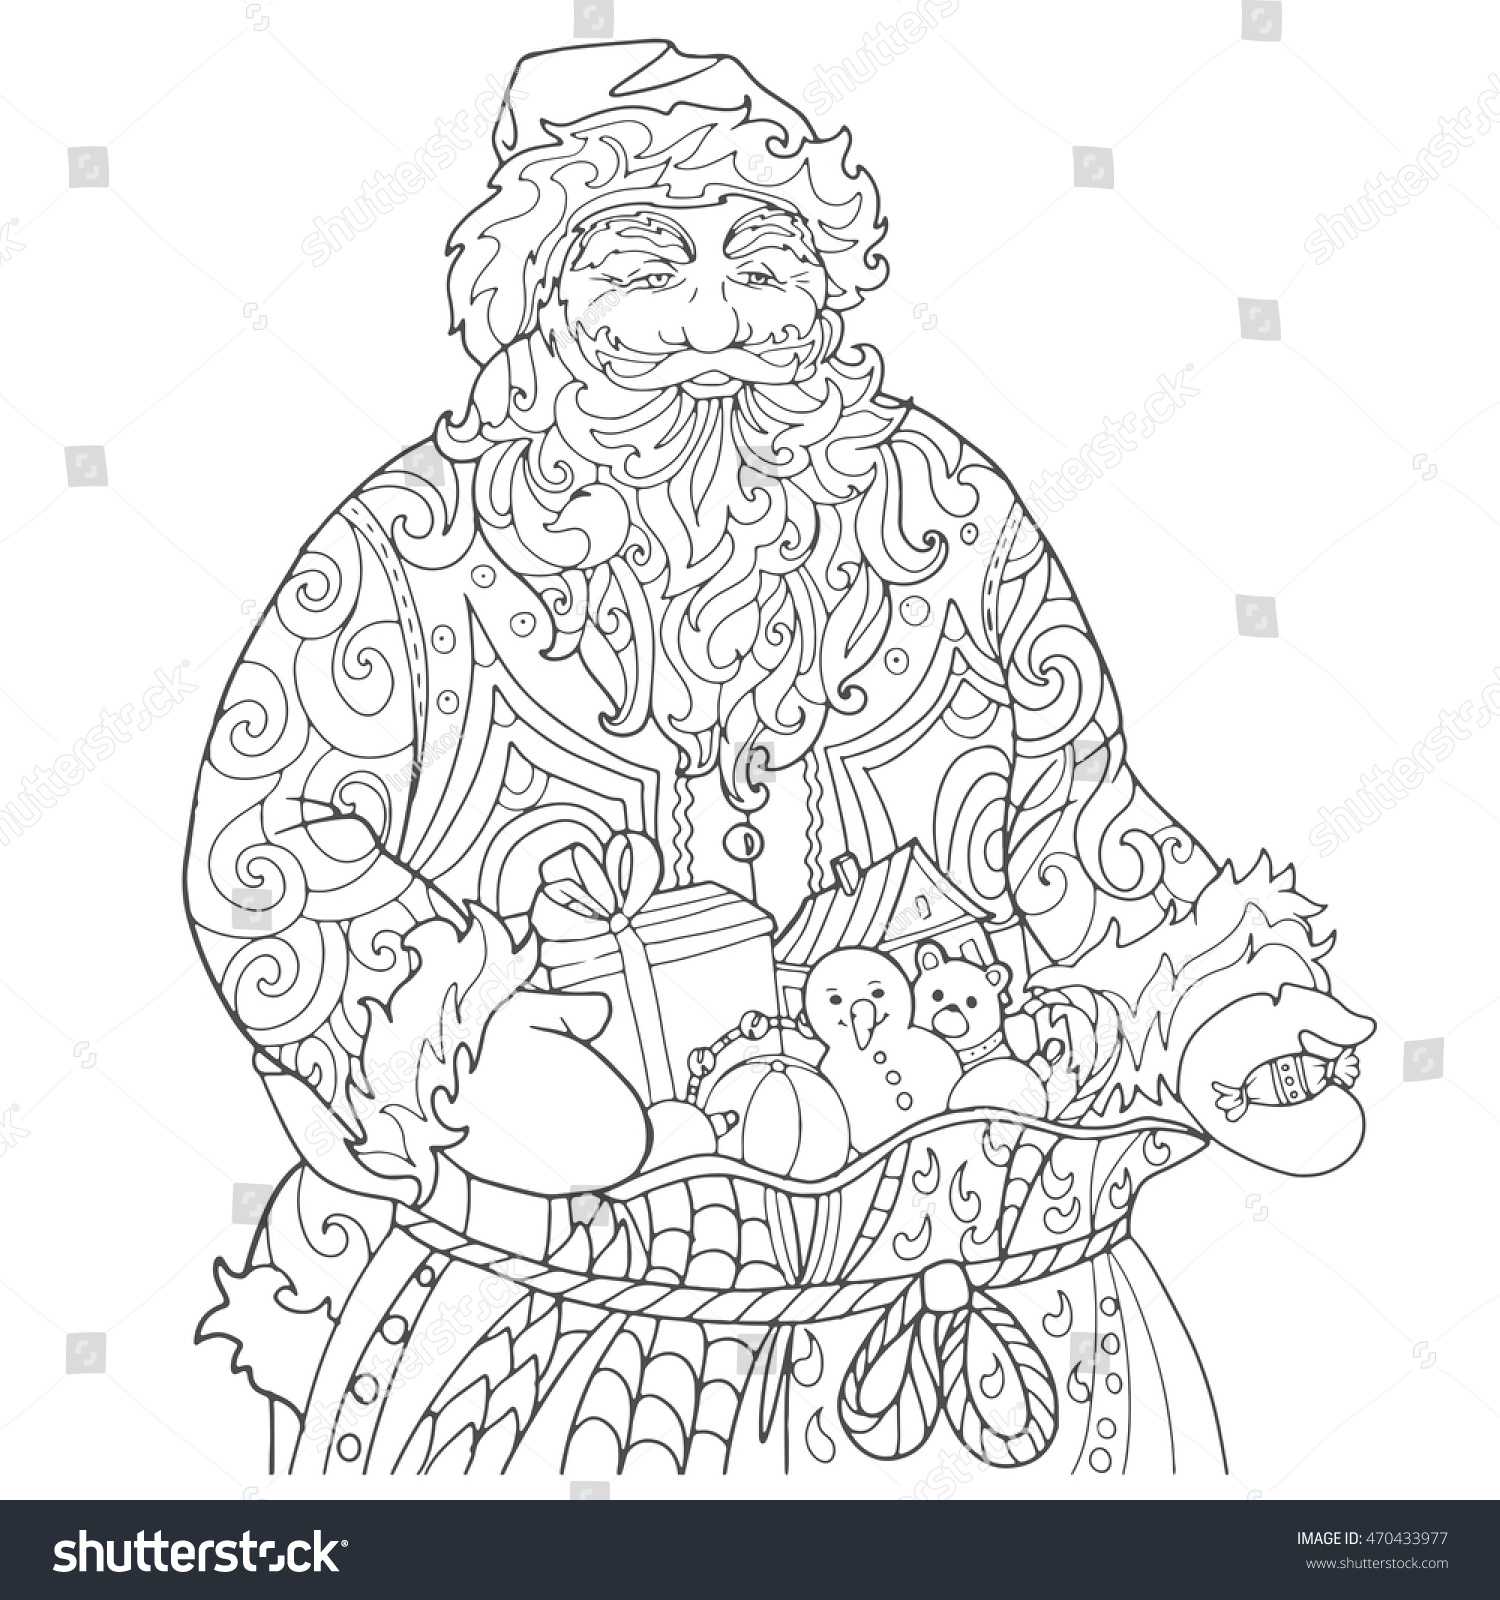 Santa Claus Bag Gifts Hand Out Stock Vector 470433977 - Shutterstock